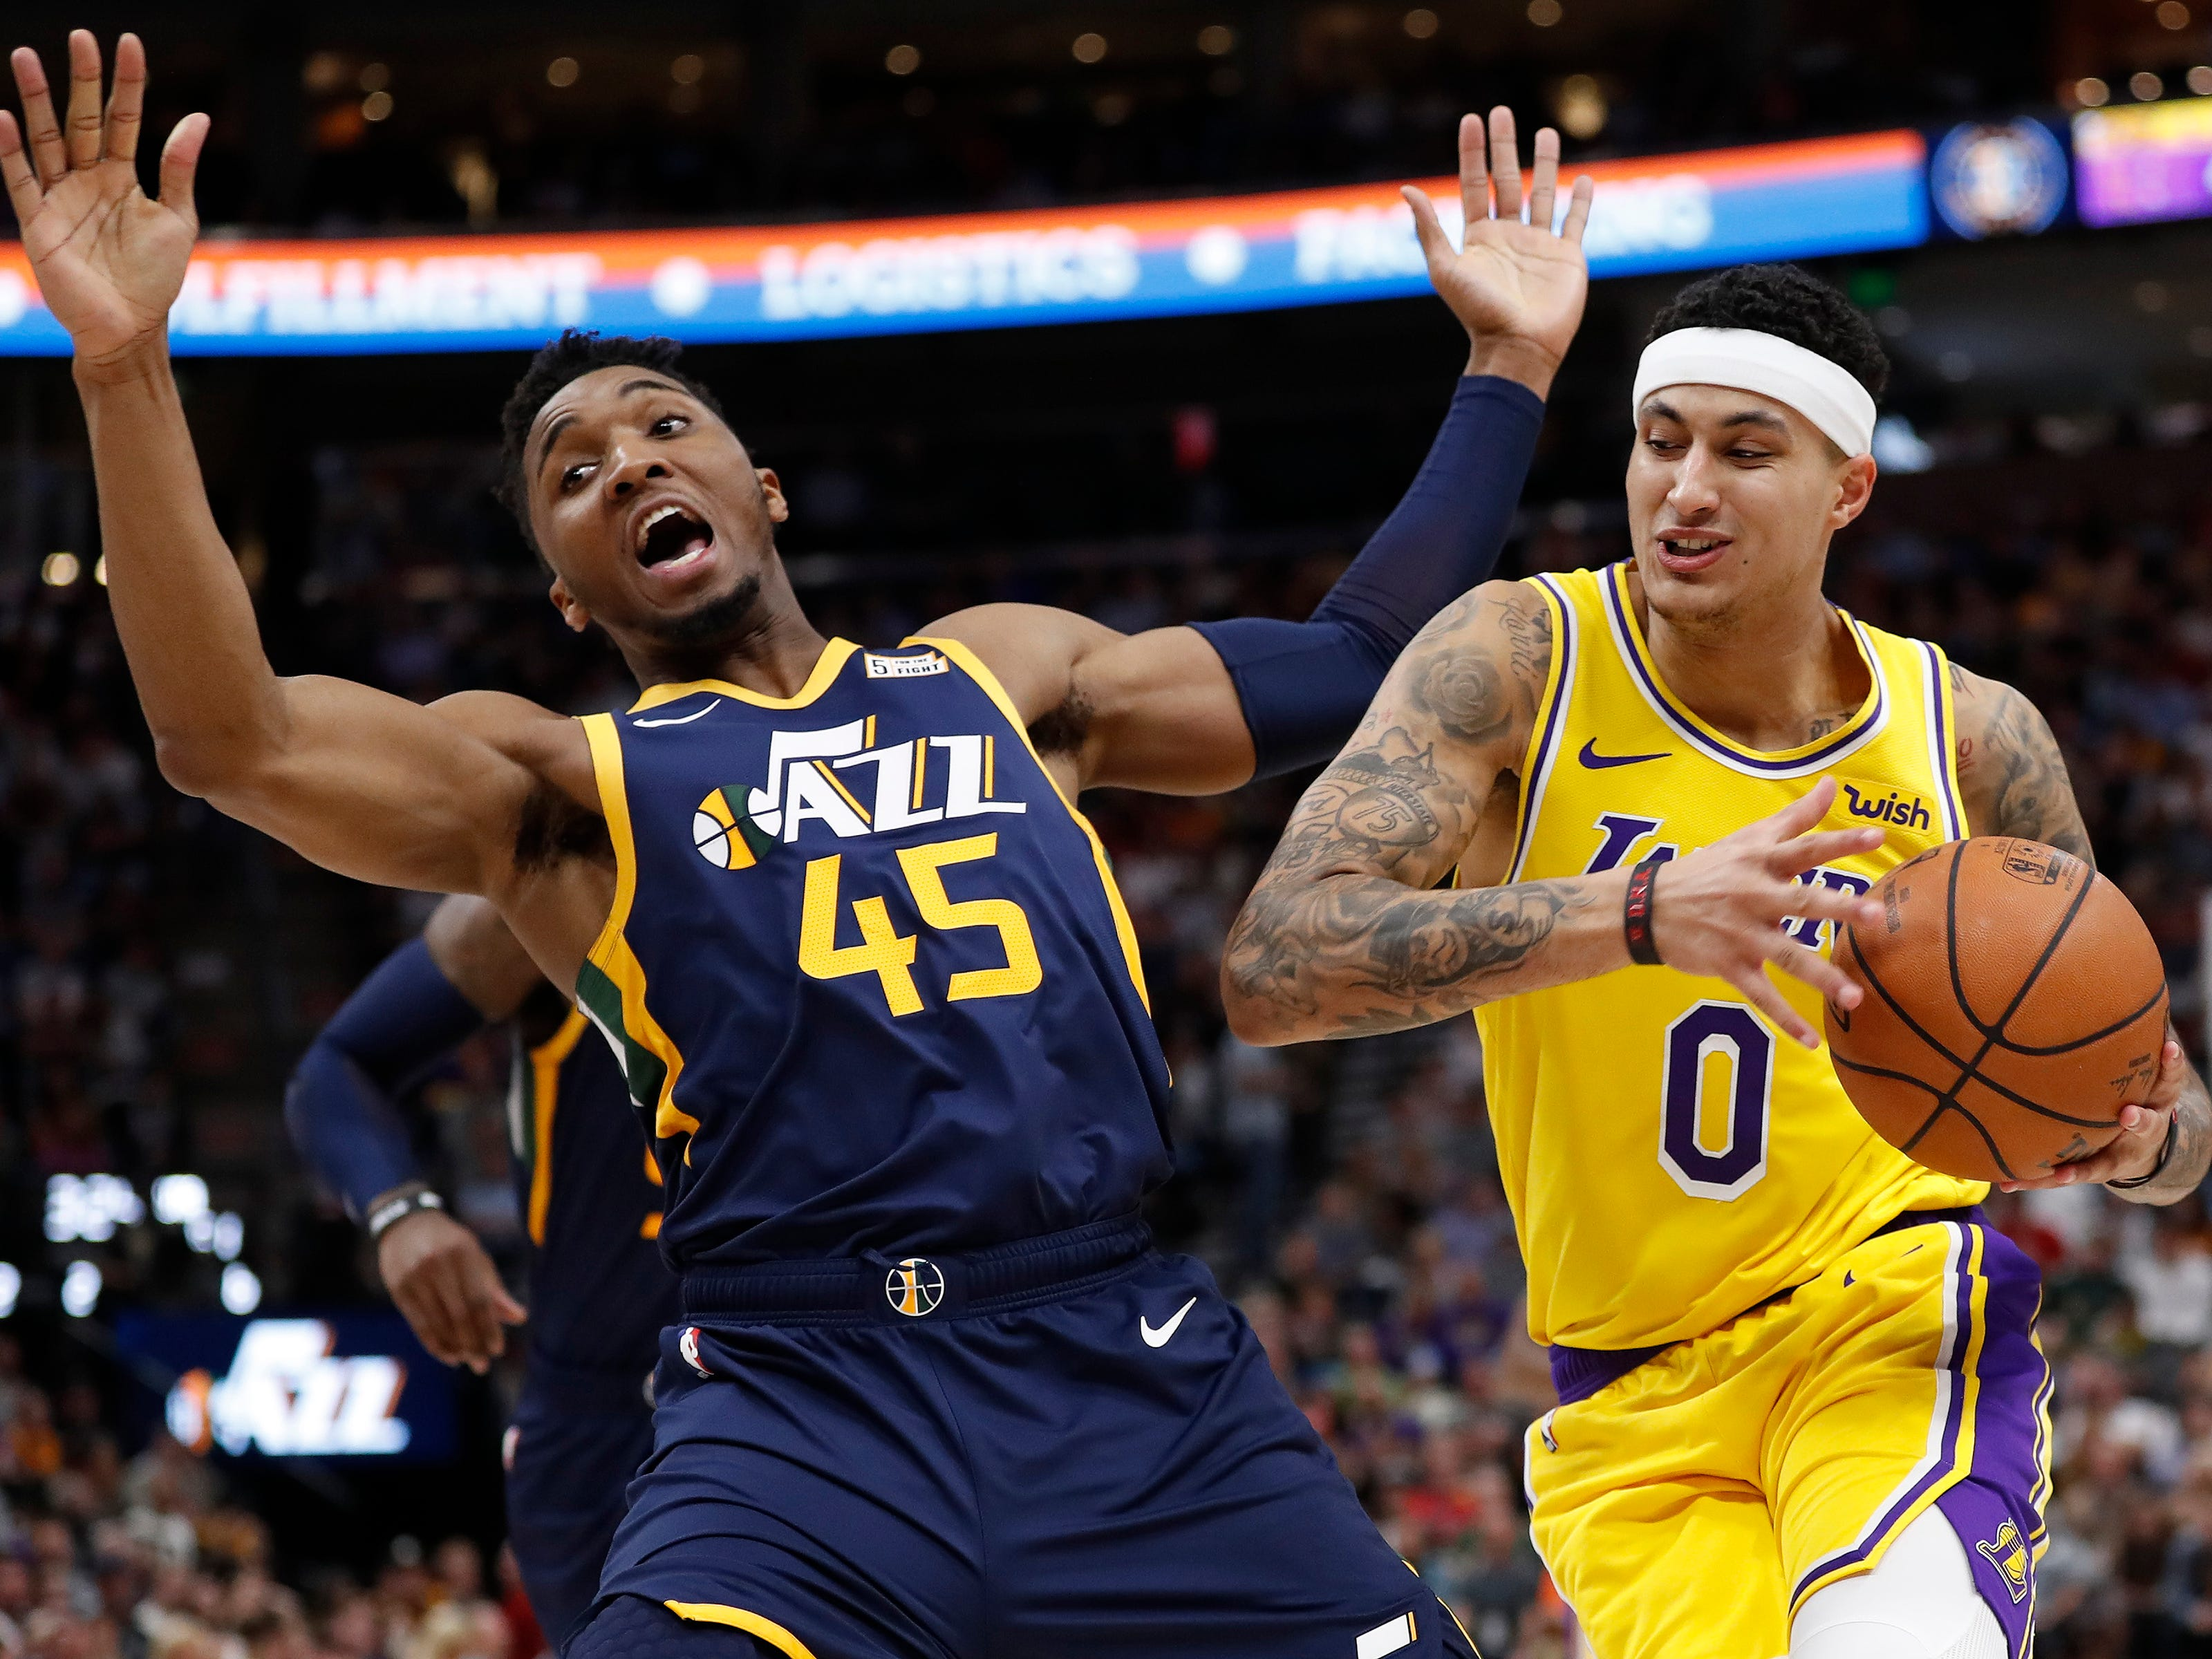 March 27: Utah Jazz guard Donovan Mitchell (45) takes a hit from Los Angeles Lakers forward Kyle Kuzma (0) in the second quarter at Vivint Smart Home Arena.